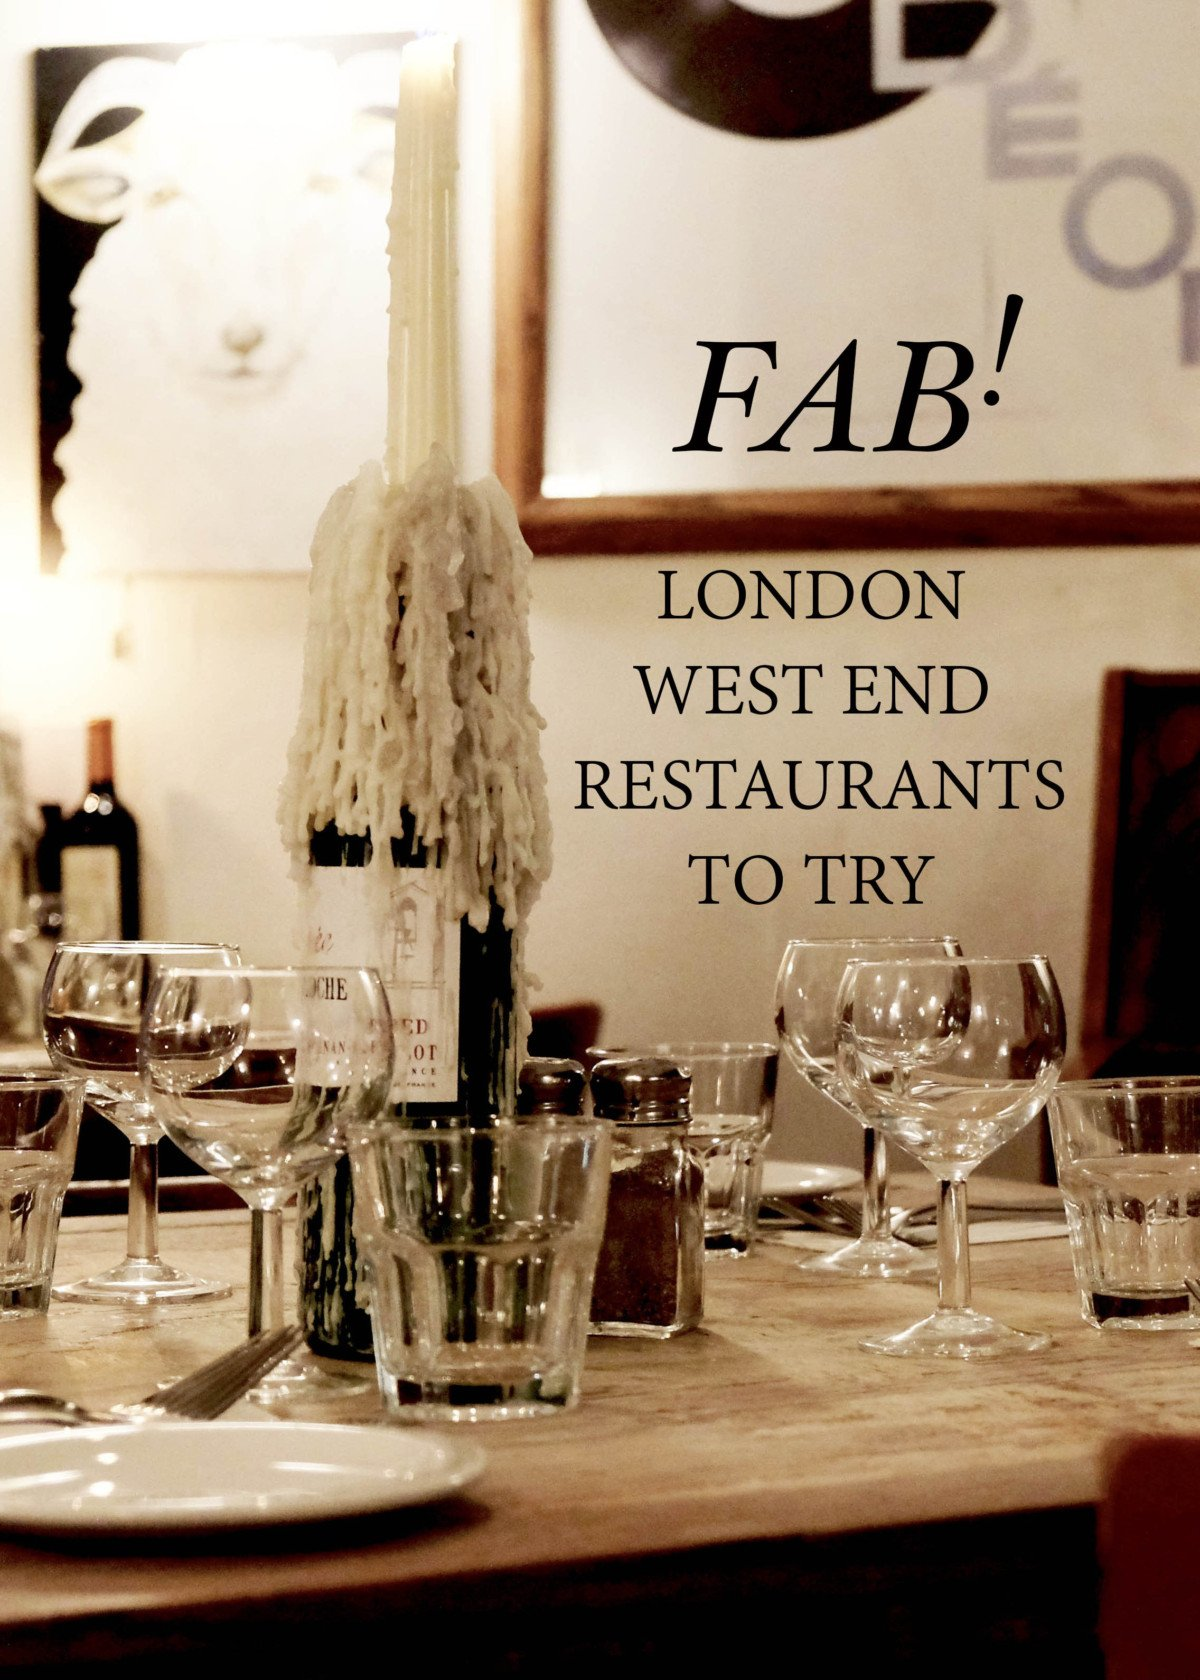 Fab London restaurants to try.